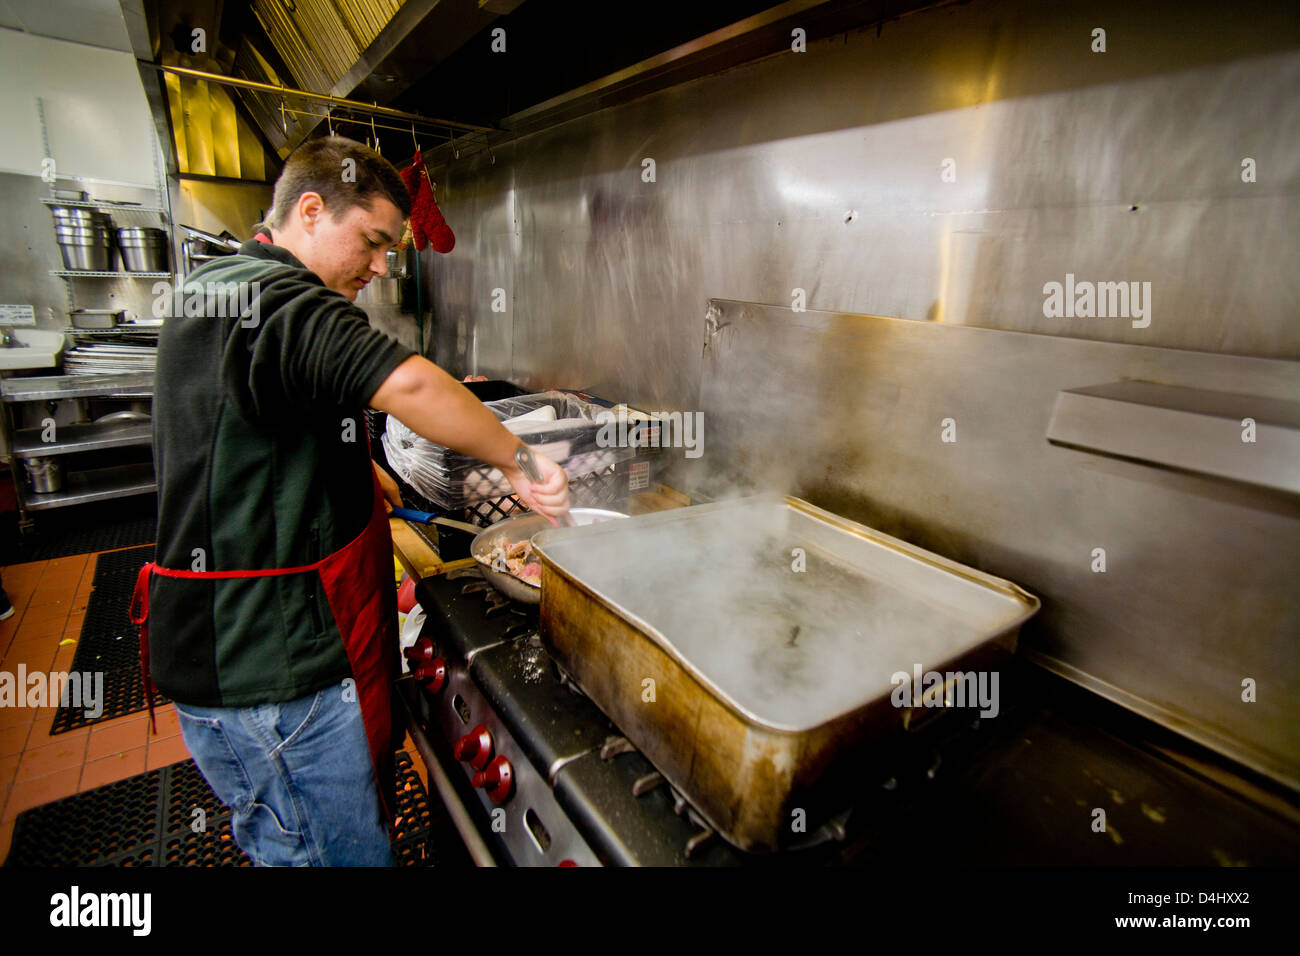 Middle class charitable volunteers pitch in at a Costa Mesa, CA, soup kitchen to feed the homeless. - Stock Image